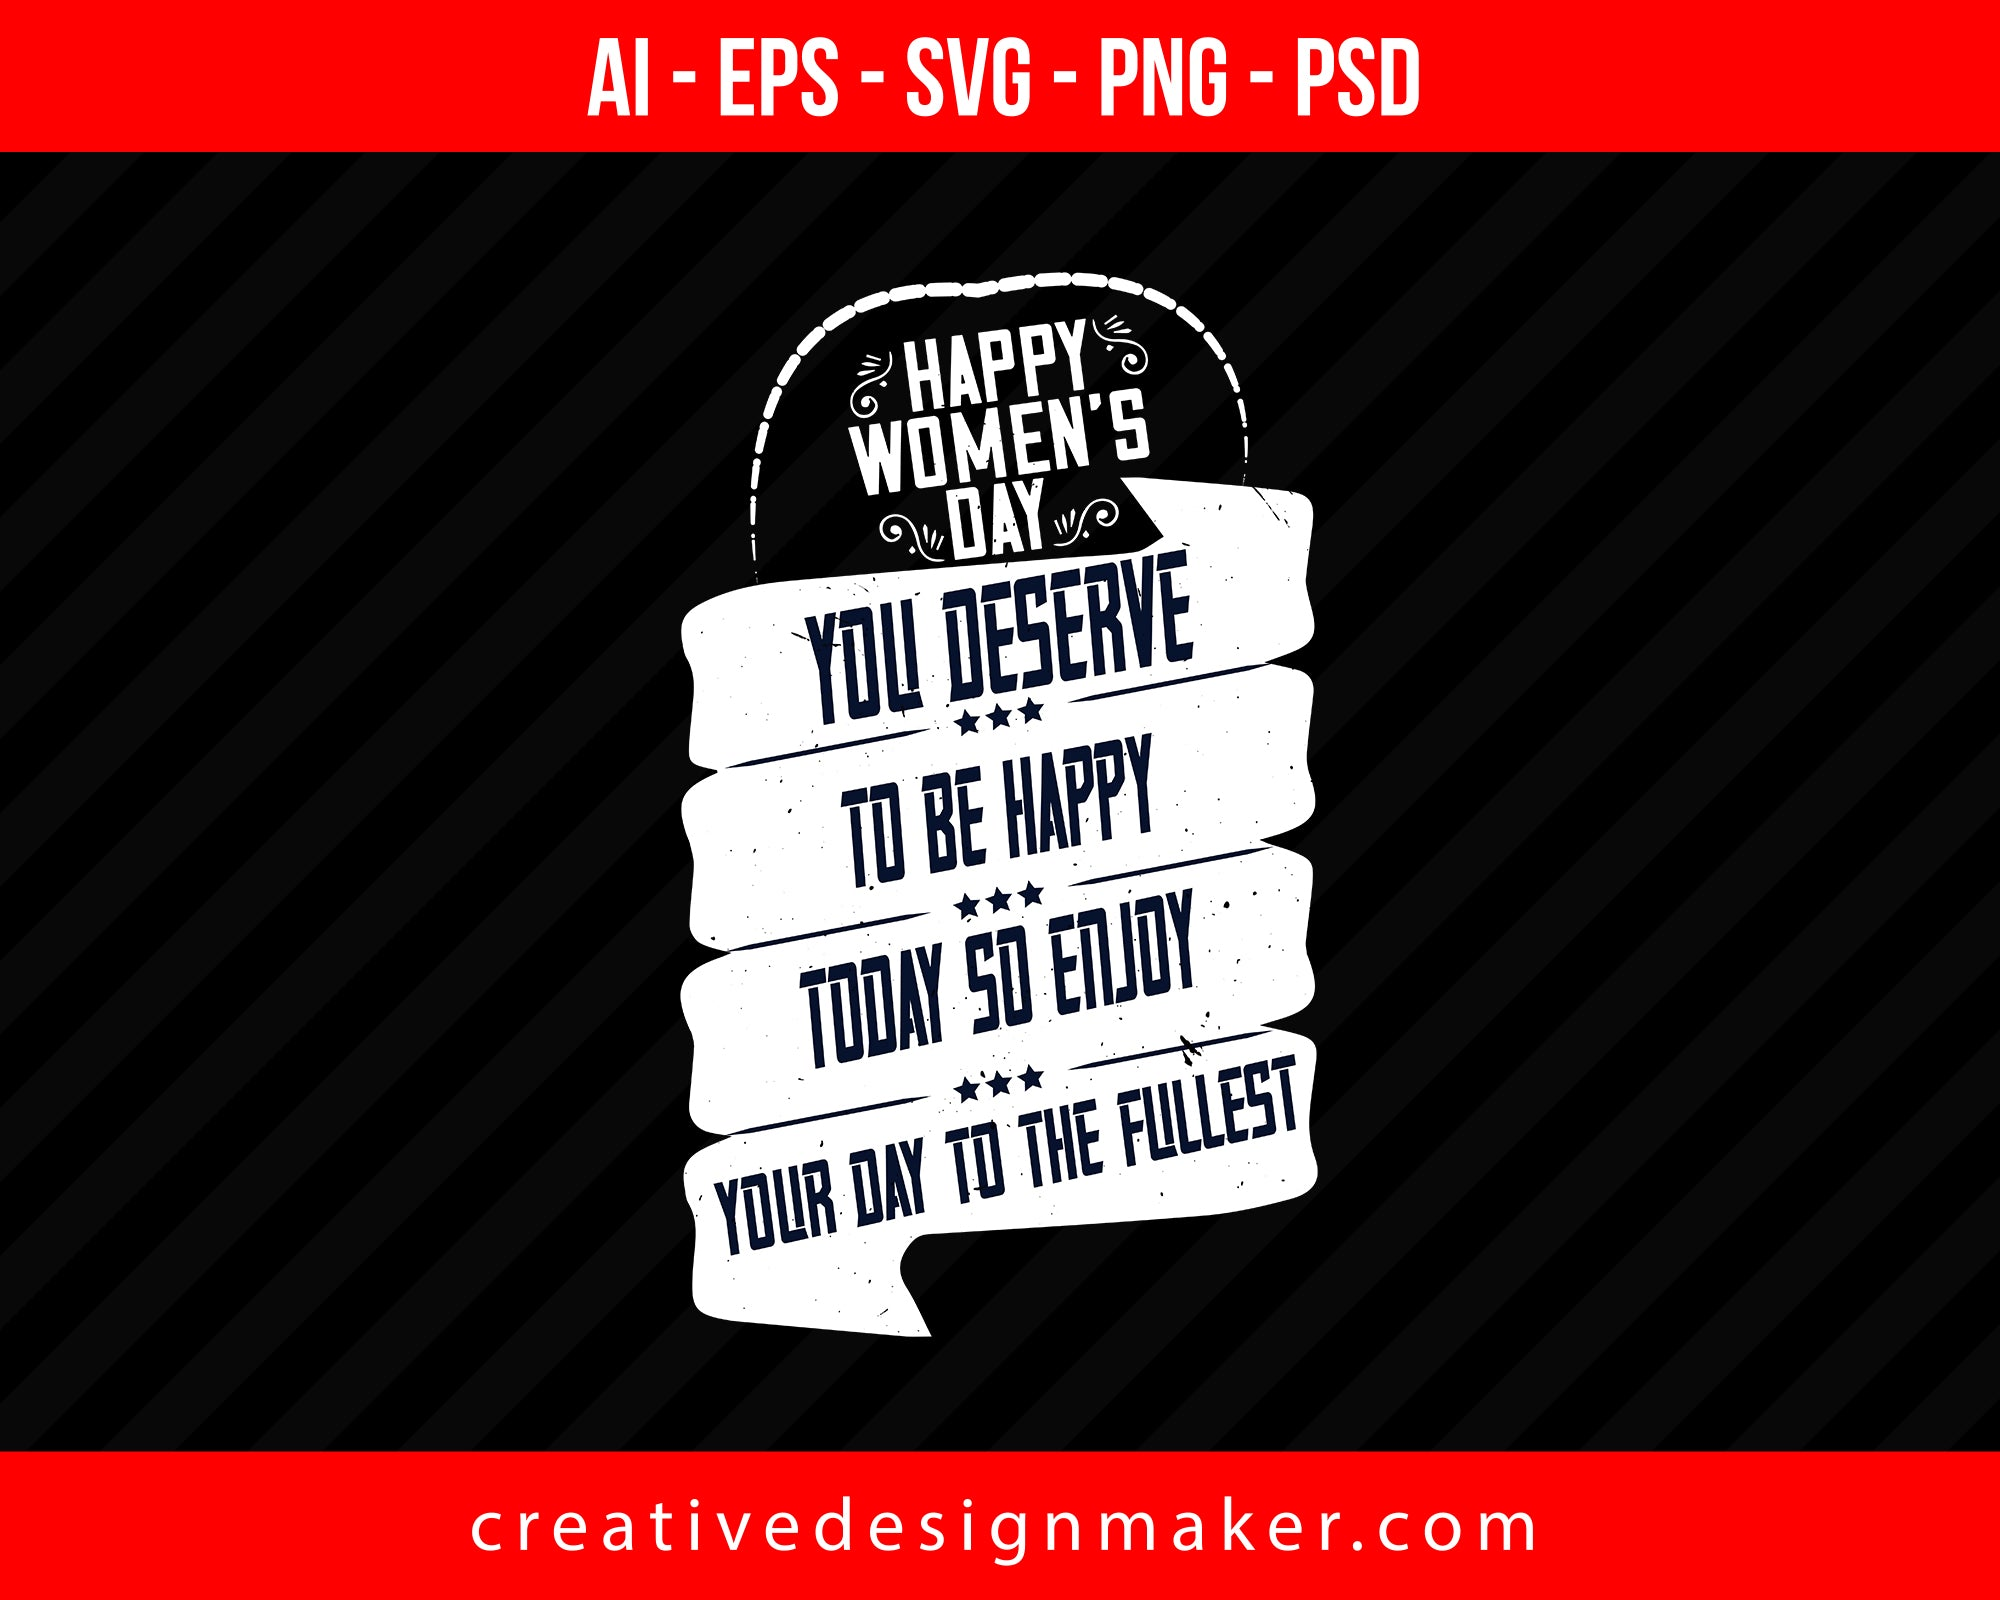 Happy Women's Day! You deserve to be happy today so enjoy your day to the fullest Print Ready Editable T-Shirt SVG Design!